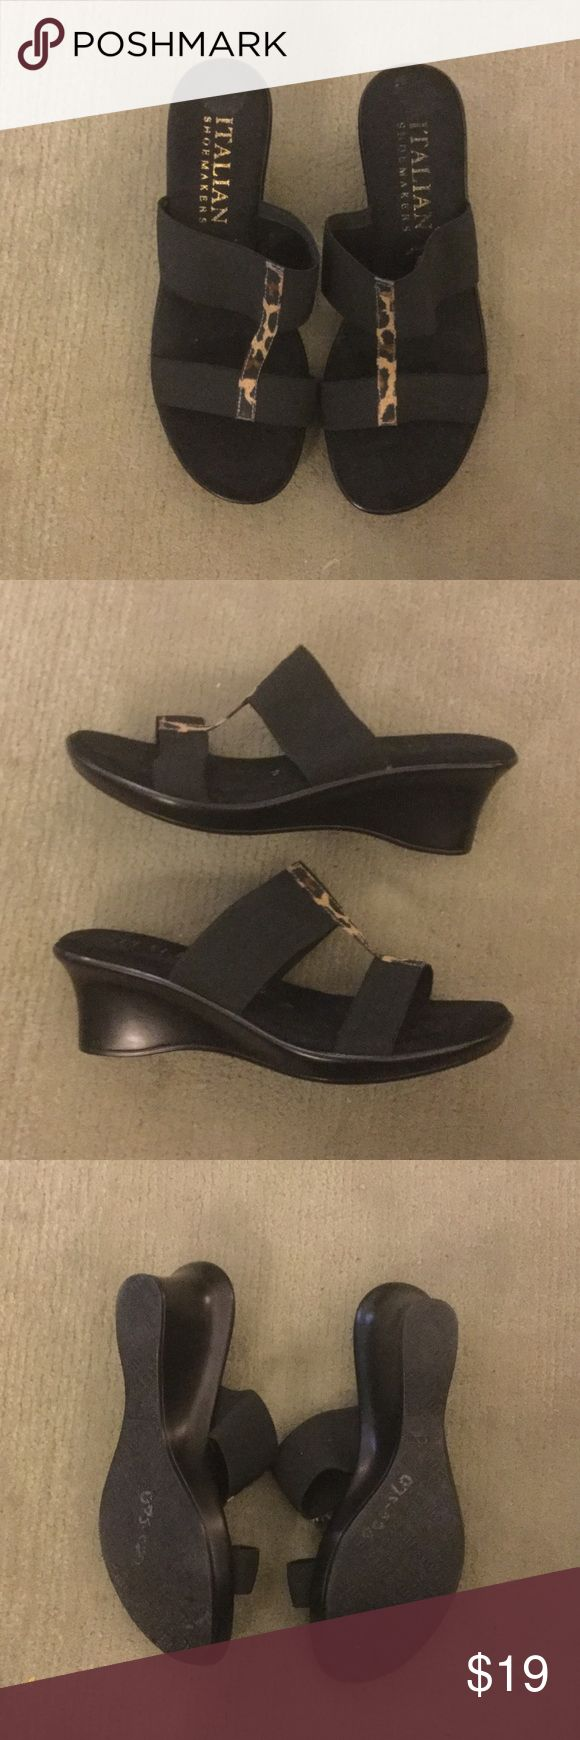 Pretty black and leopard wedge sandals Slip on wedge Sandler with cushioned footbed and stretchy elastic uppers.  Very good condition.  Only worn a couple times Italian Shoemakers Shoes Wedges